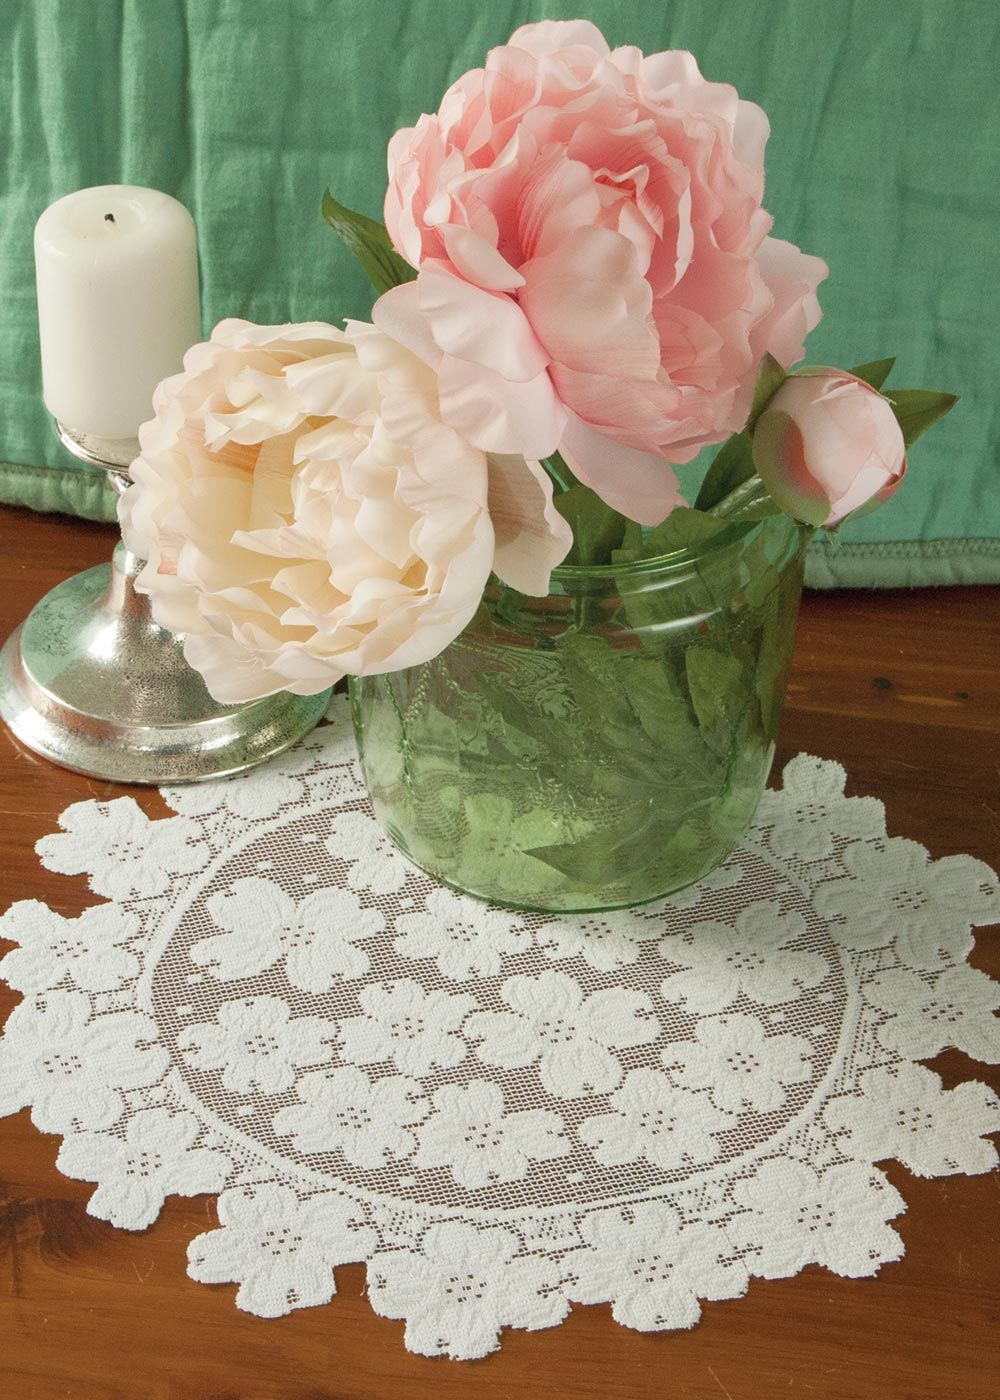 Dogwood Round Doily Heritage Lace To Make My Bowls With Wedding